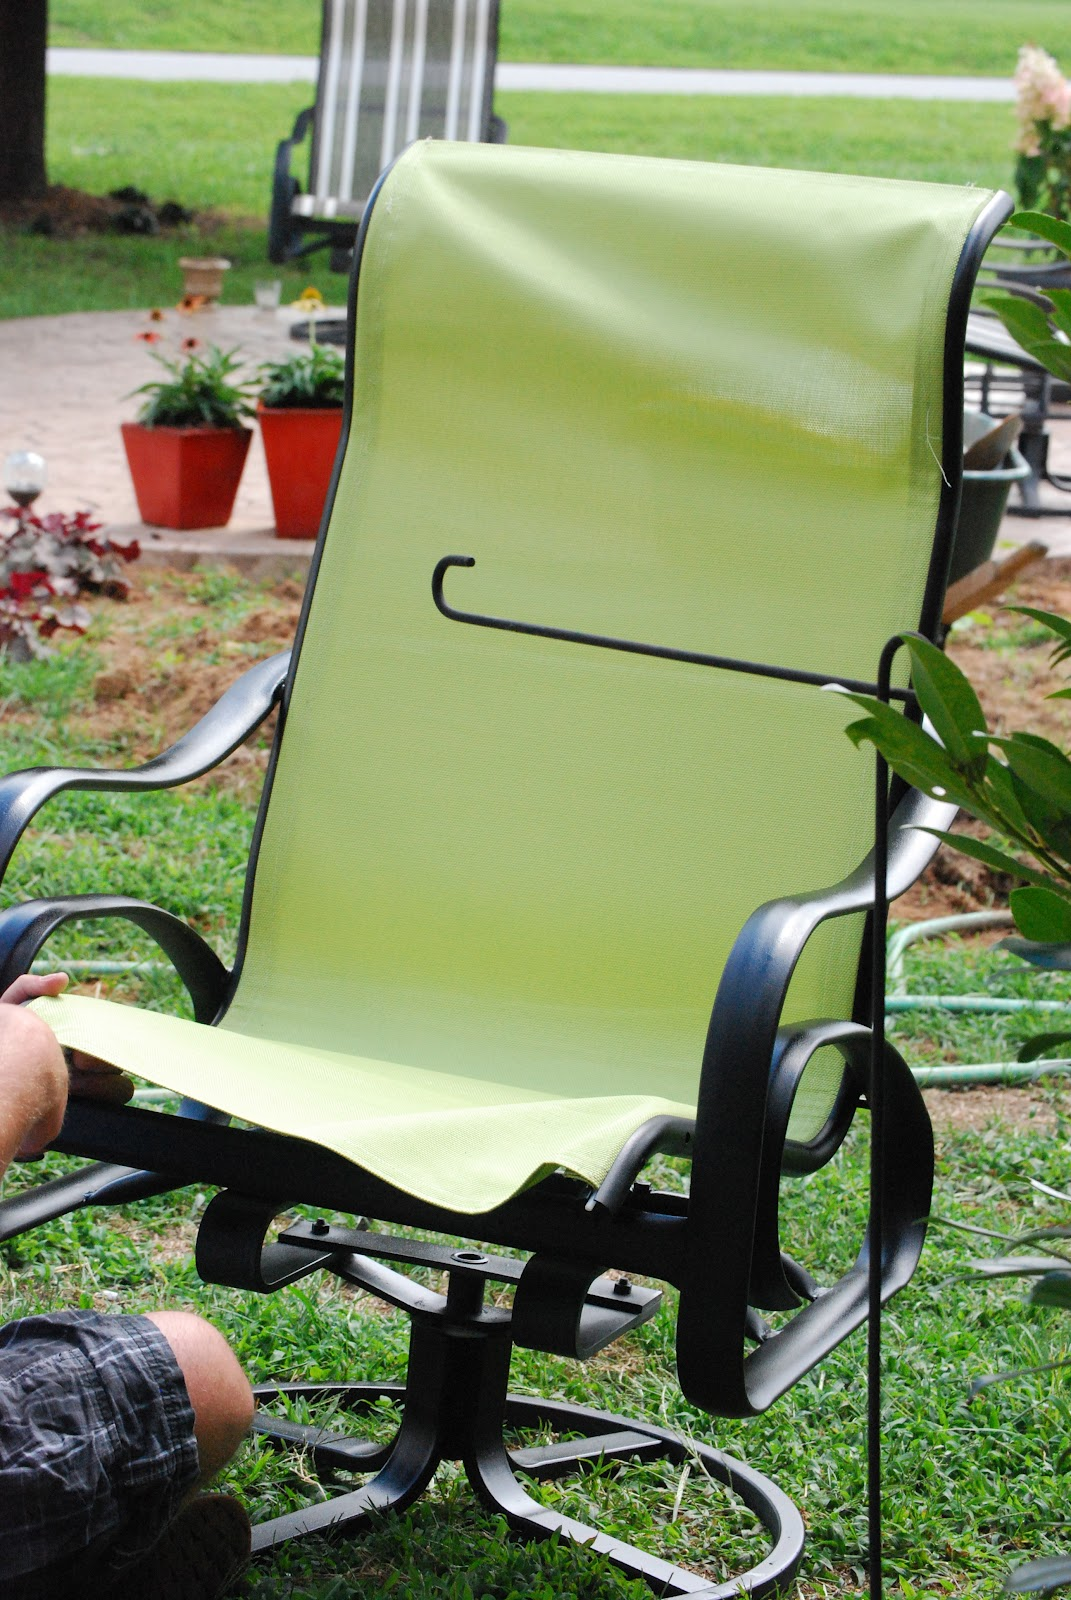 Redo Sling Patio Chairs Diy Lawn Chair Covers Recover Back